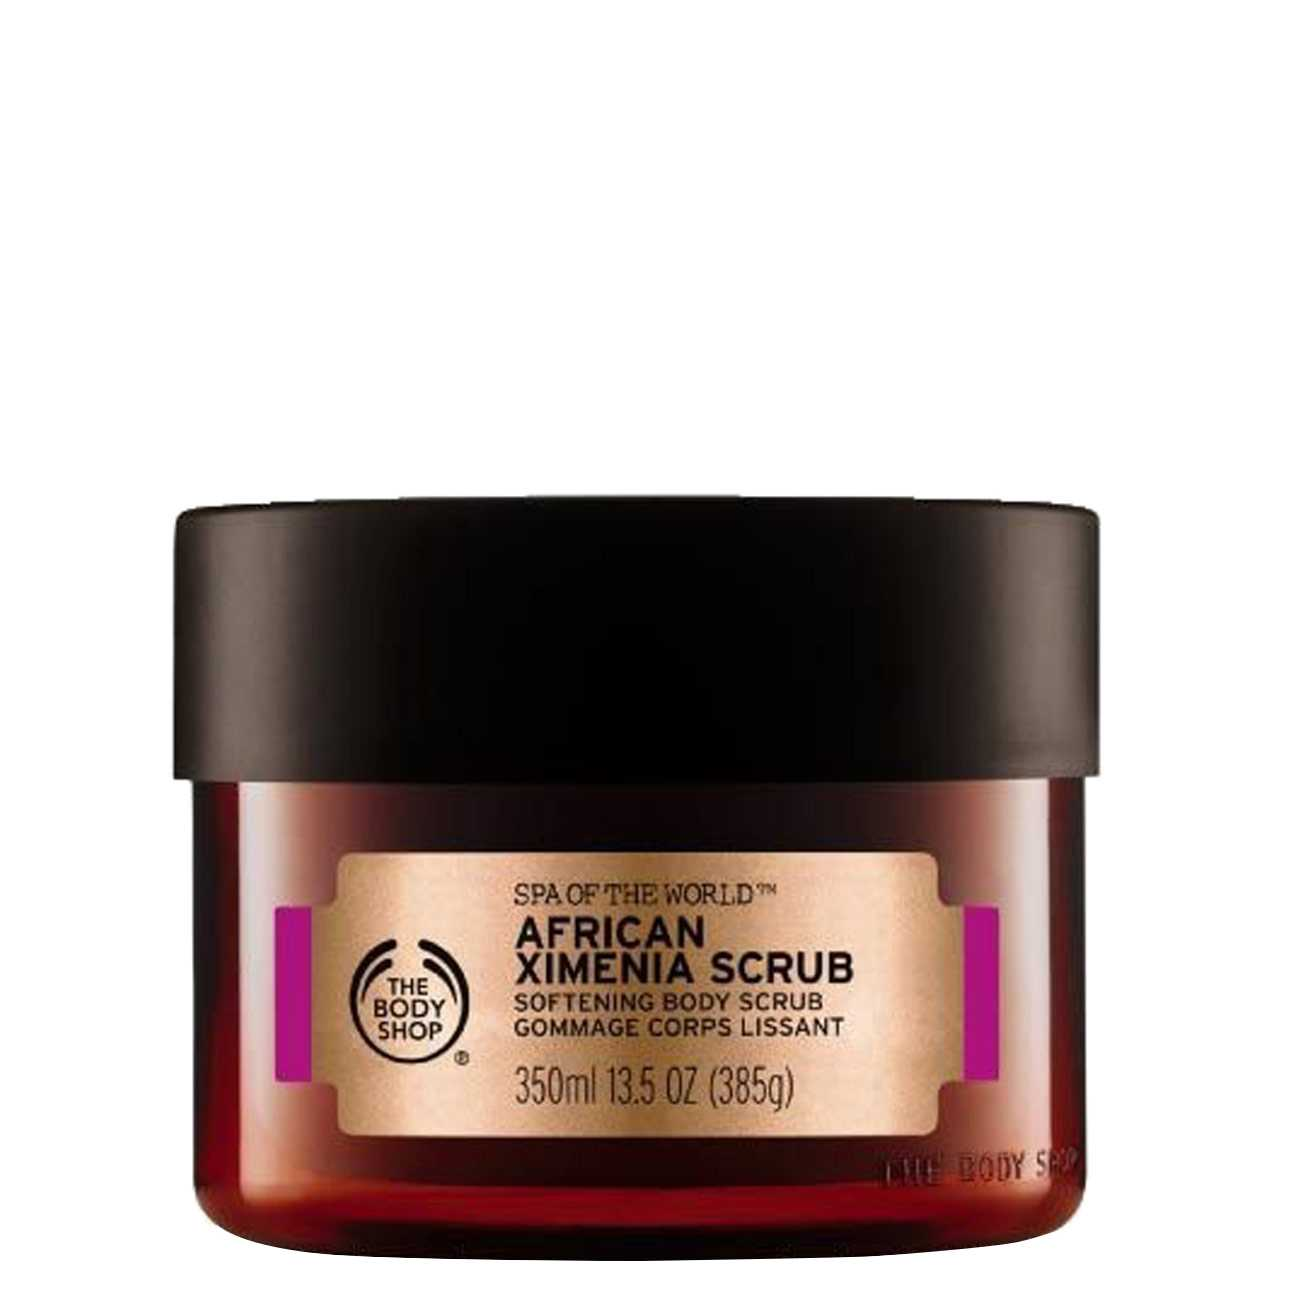 AFRICAN XIMENIA SCRUB 350 ML